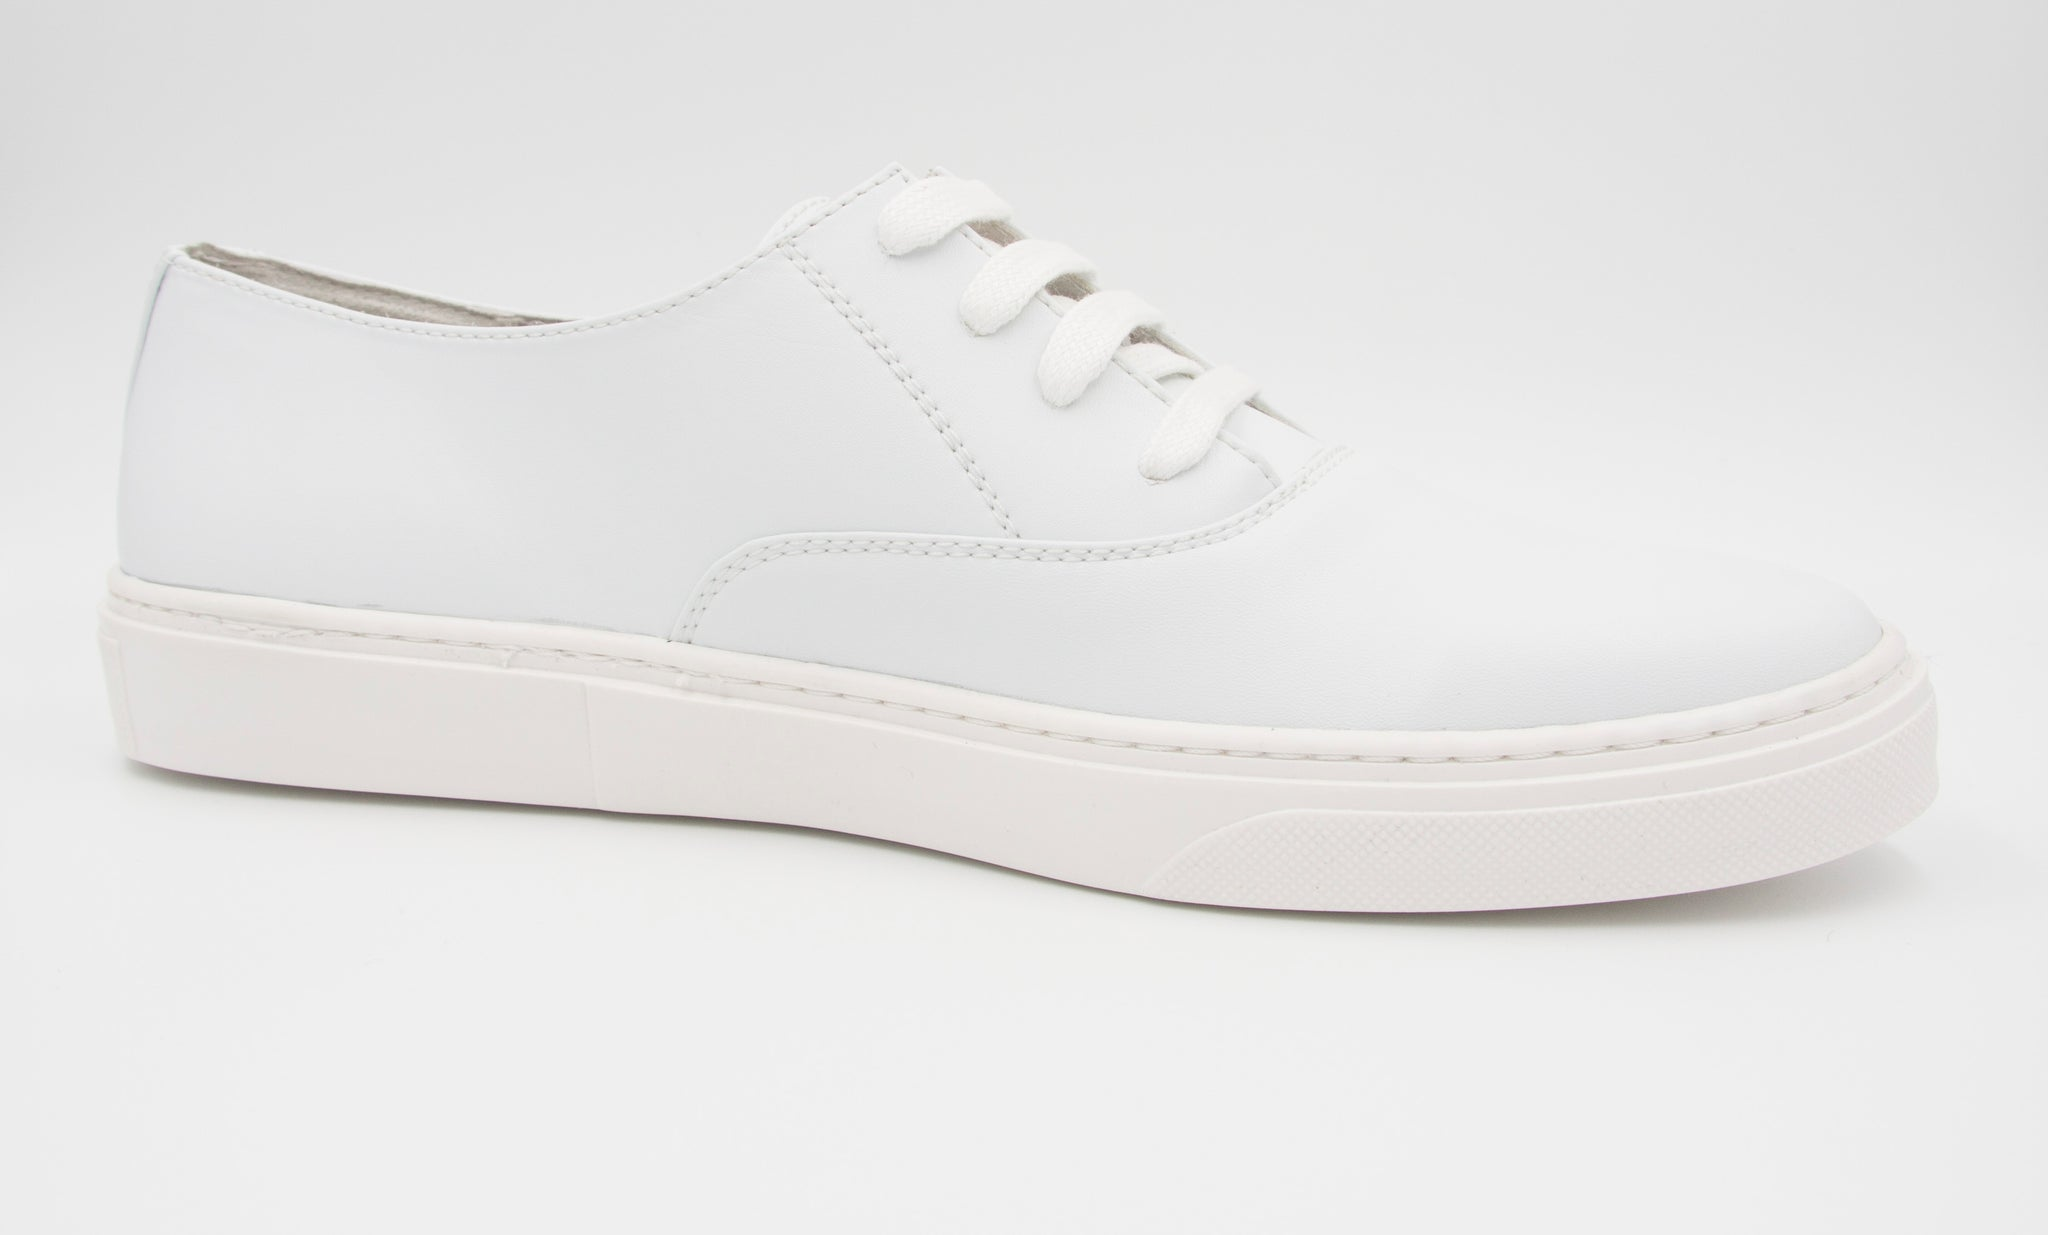 Vegan white sneakers made in the EU of cruelty-free materials.